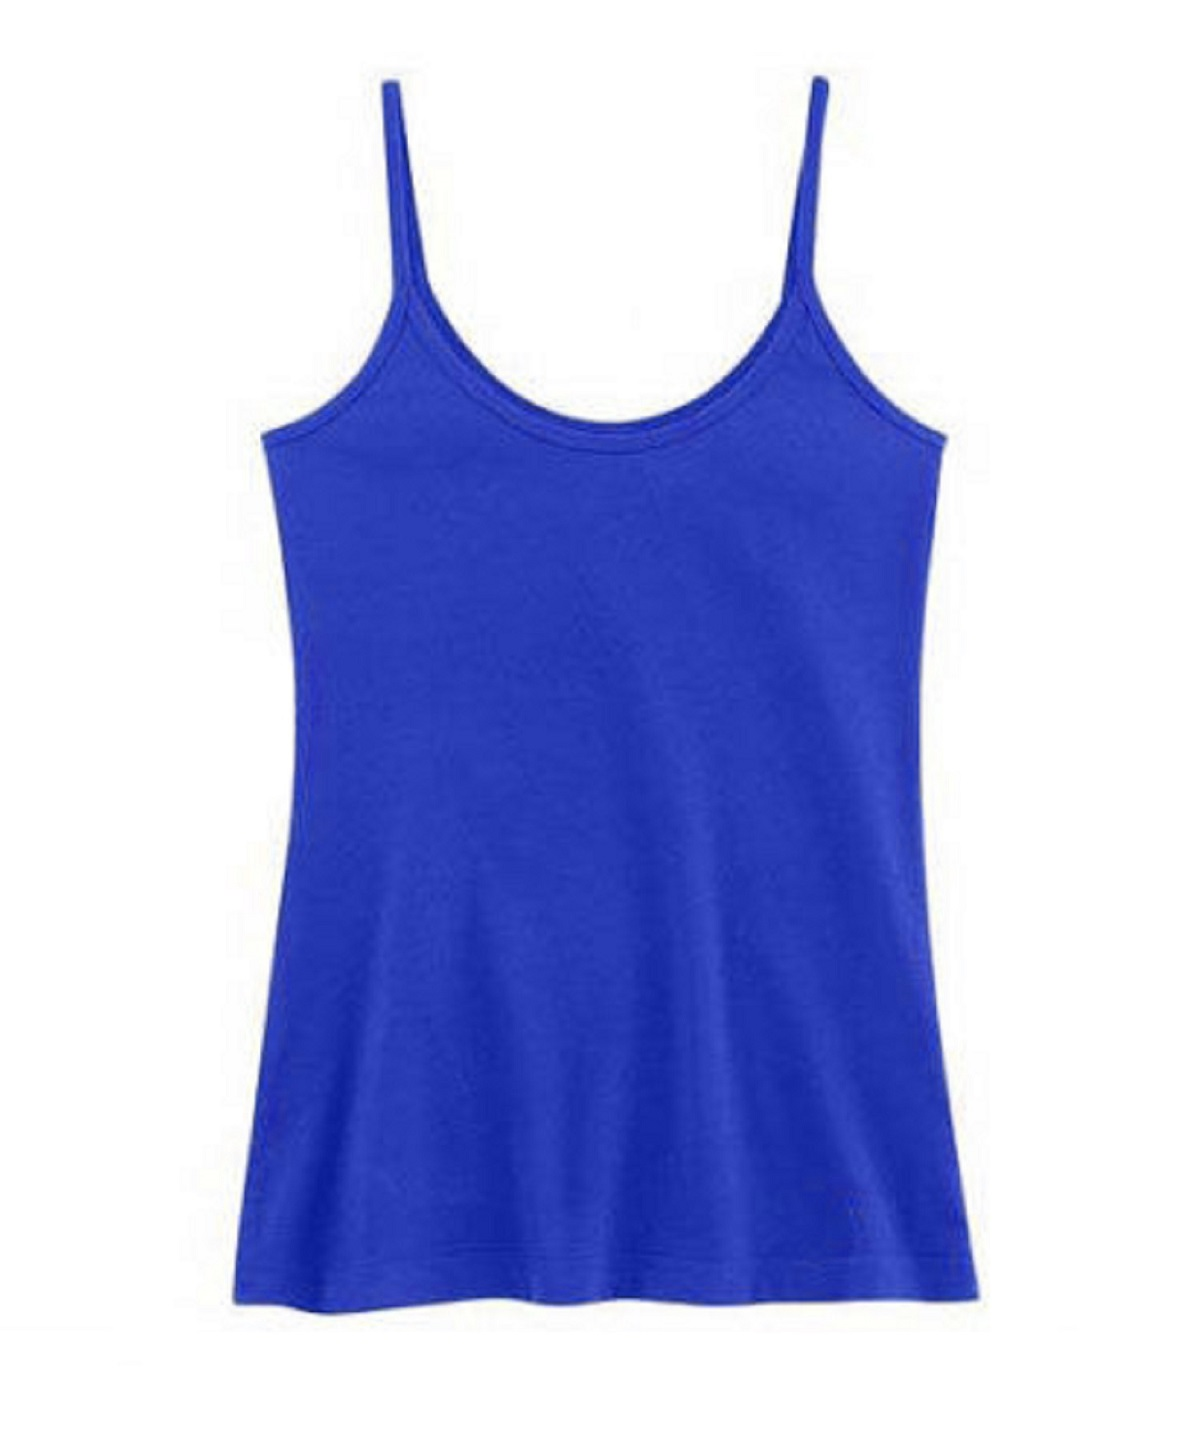 This is a brand new women's Joe Fresh green/blue stripe sleeveless top. - pair with a skirt, jeans or pants. - perfect for chilly weathe.